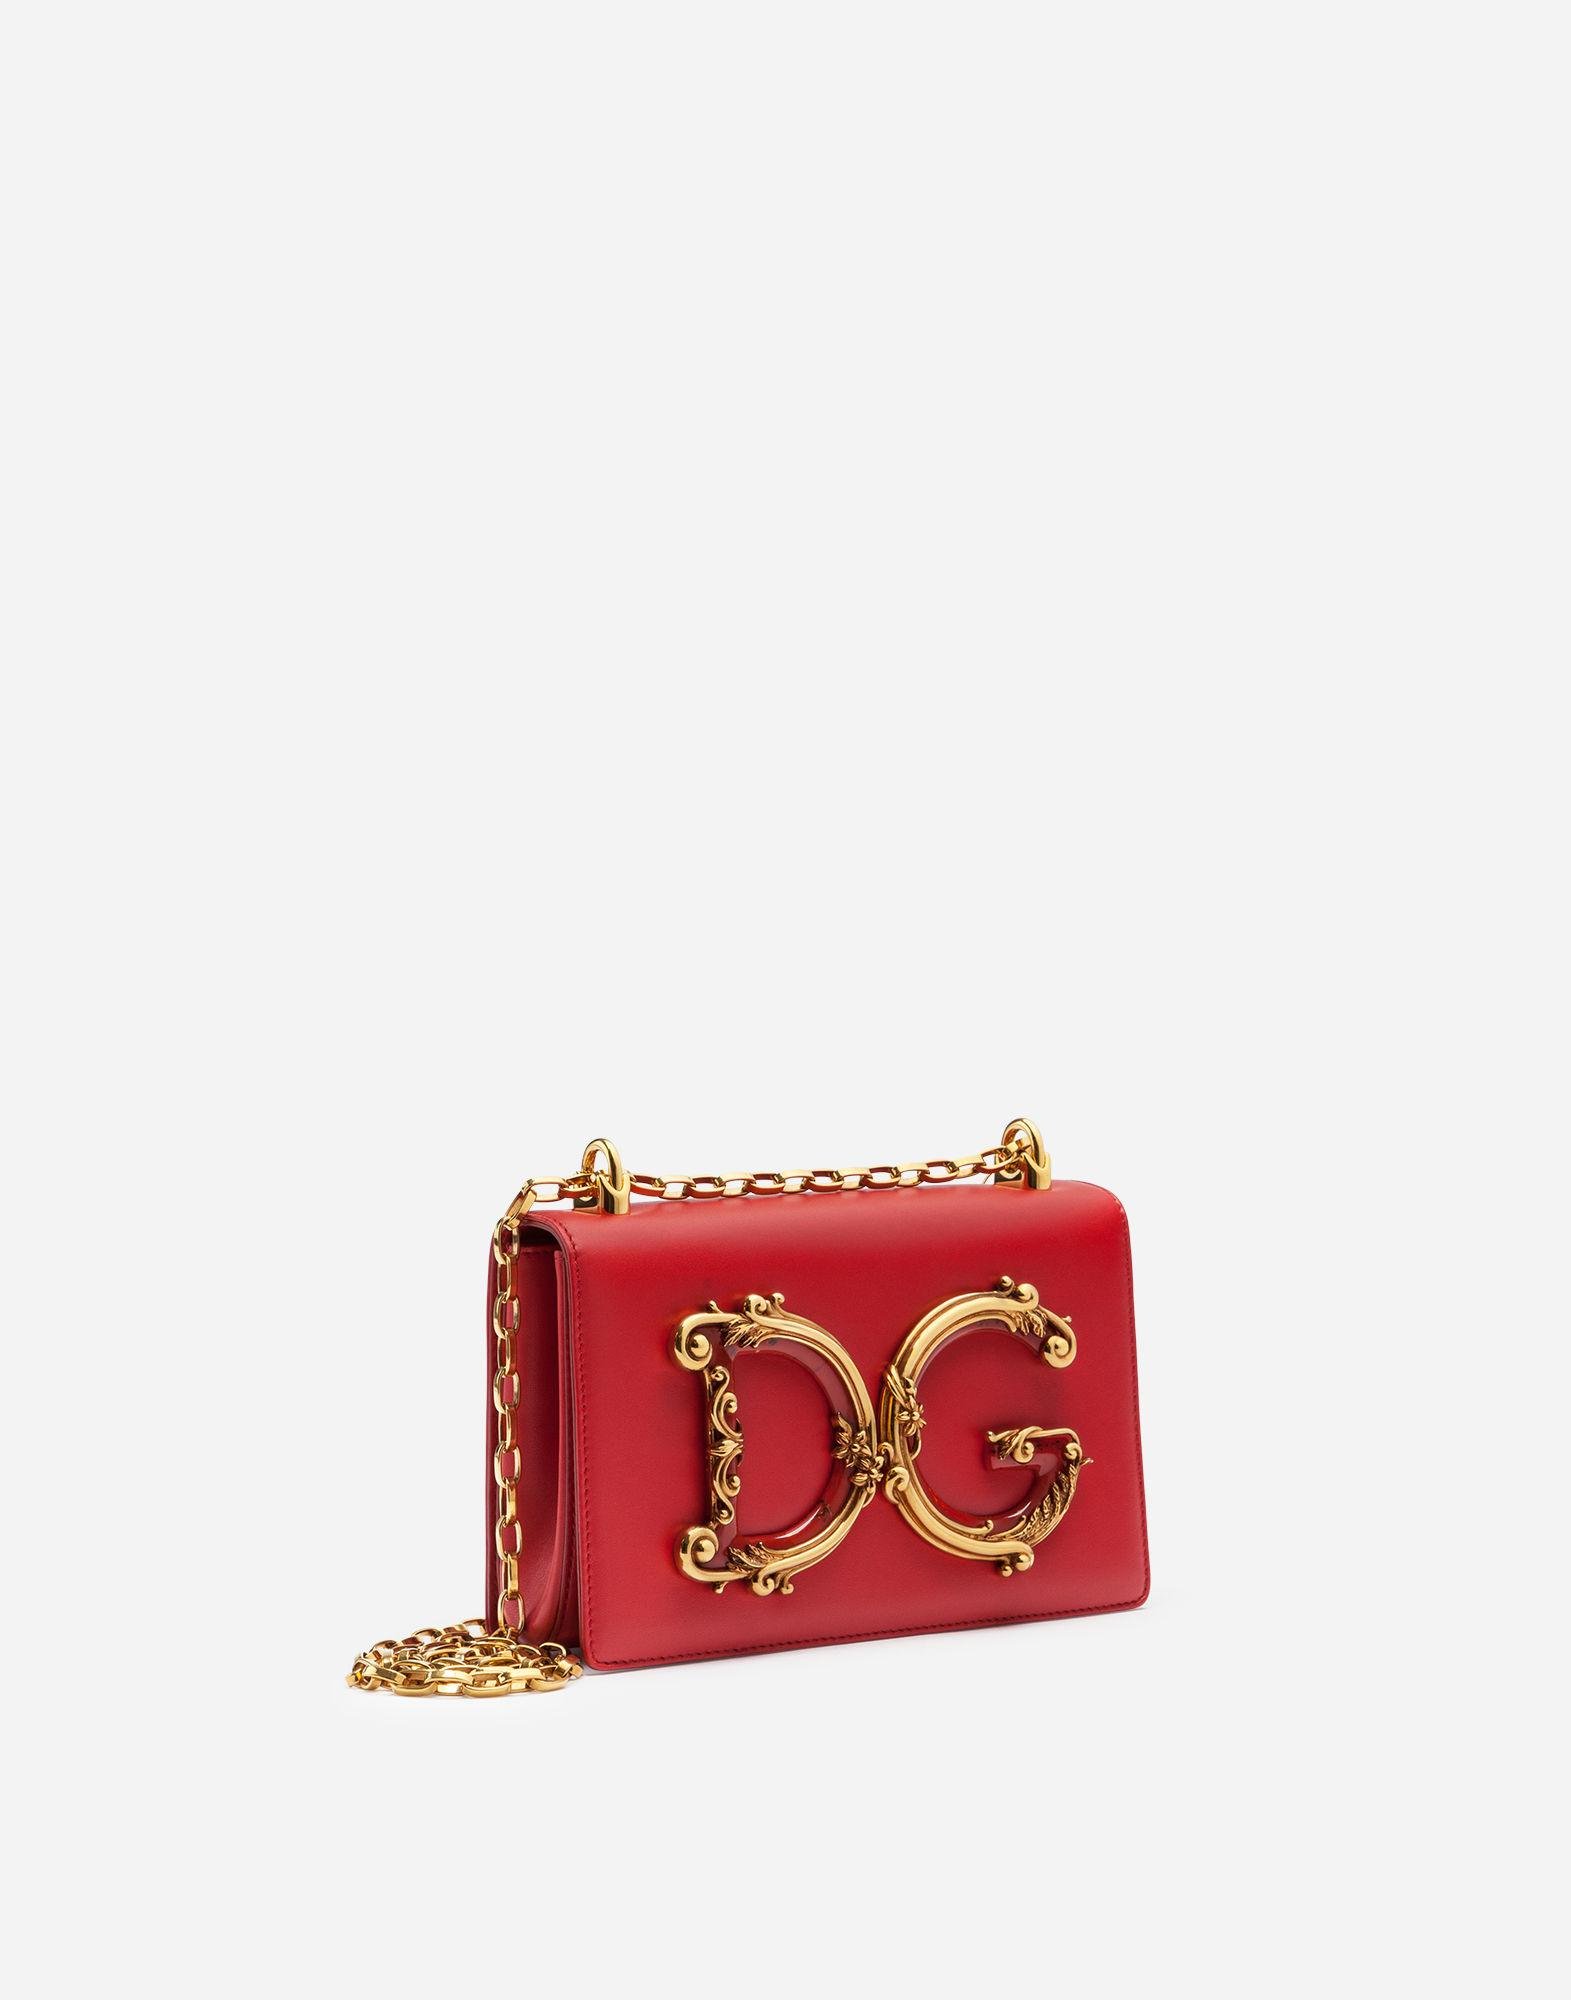 a65626efcf5a Lyst - Dolce   Gabbana Dg Girls Shoulder Bag In Nappa Leather in Red